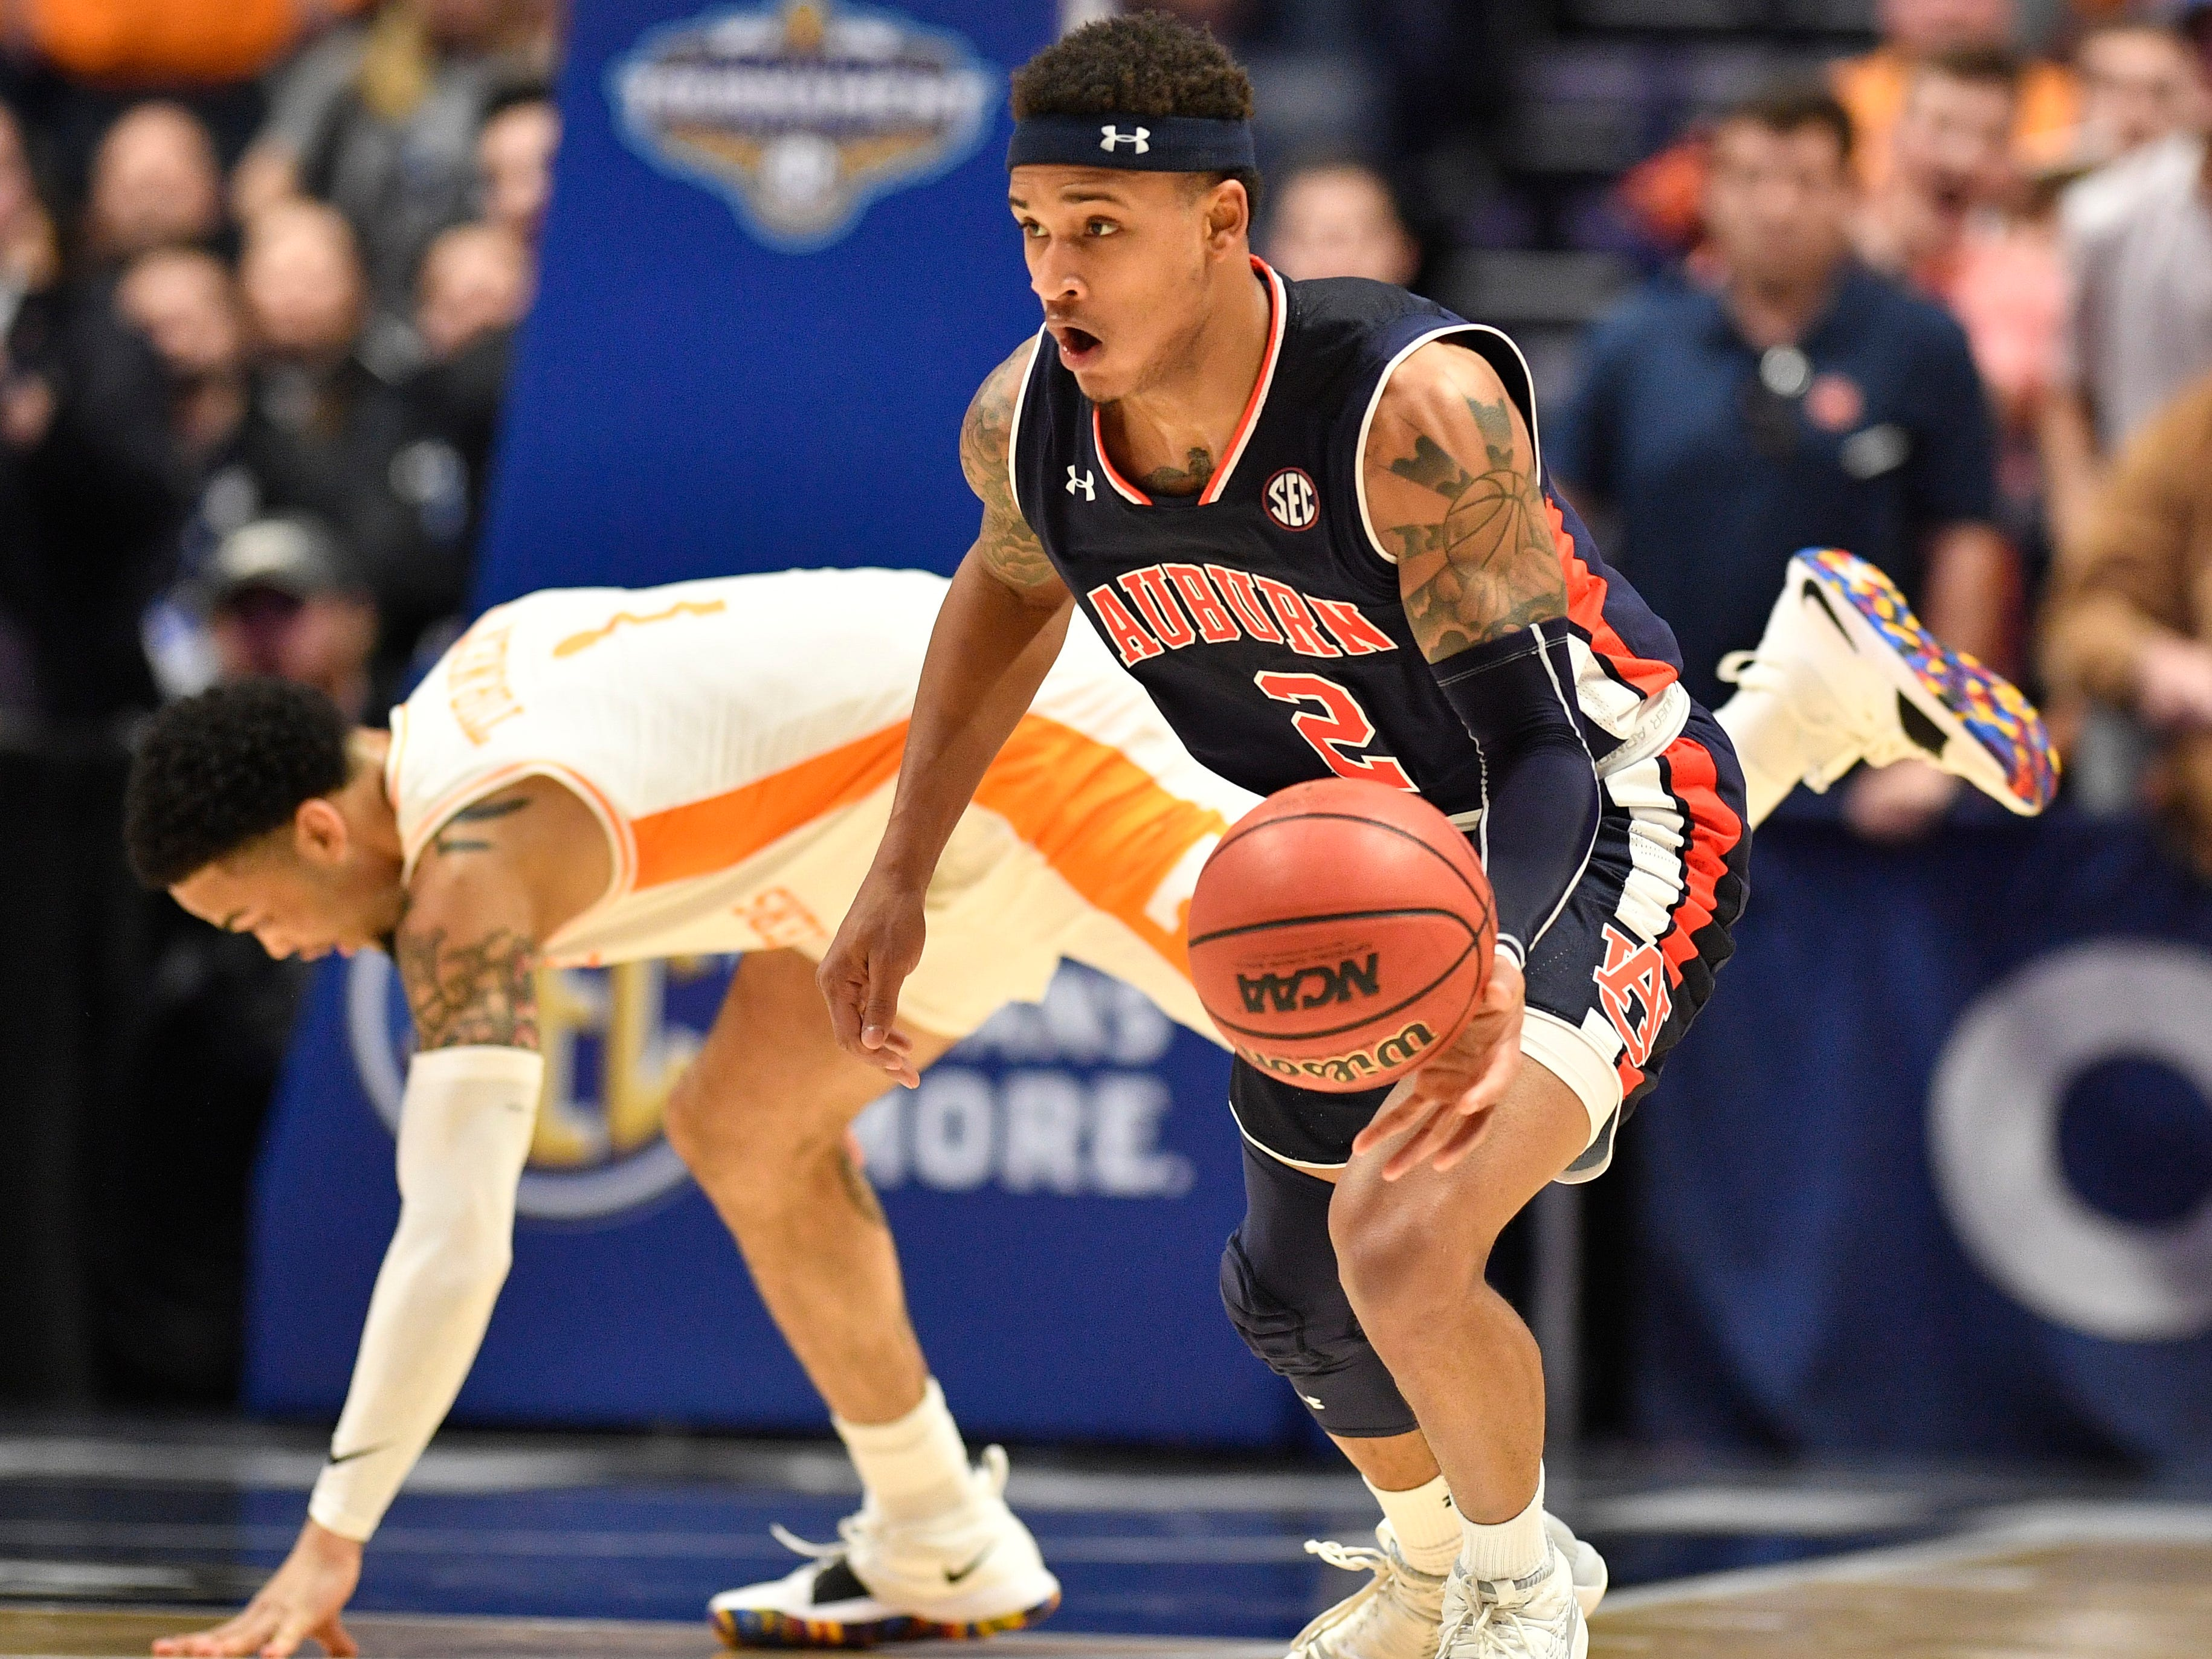 Auburn guard Bryce Brown (2) moves the ball as Tennessee guard Lamonte Turner (1) tumbles behind him during the first half of the SEC Men's Basketball Tournament championship game at Bridgestone Arena in Nashville, Tenn., Sunday, March 17, 2019.